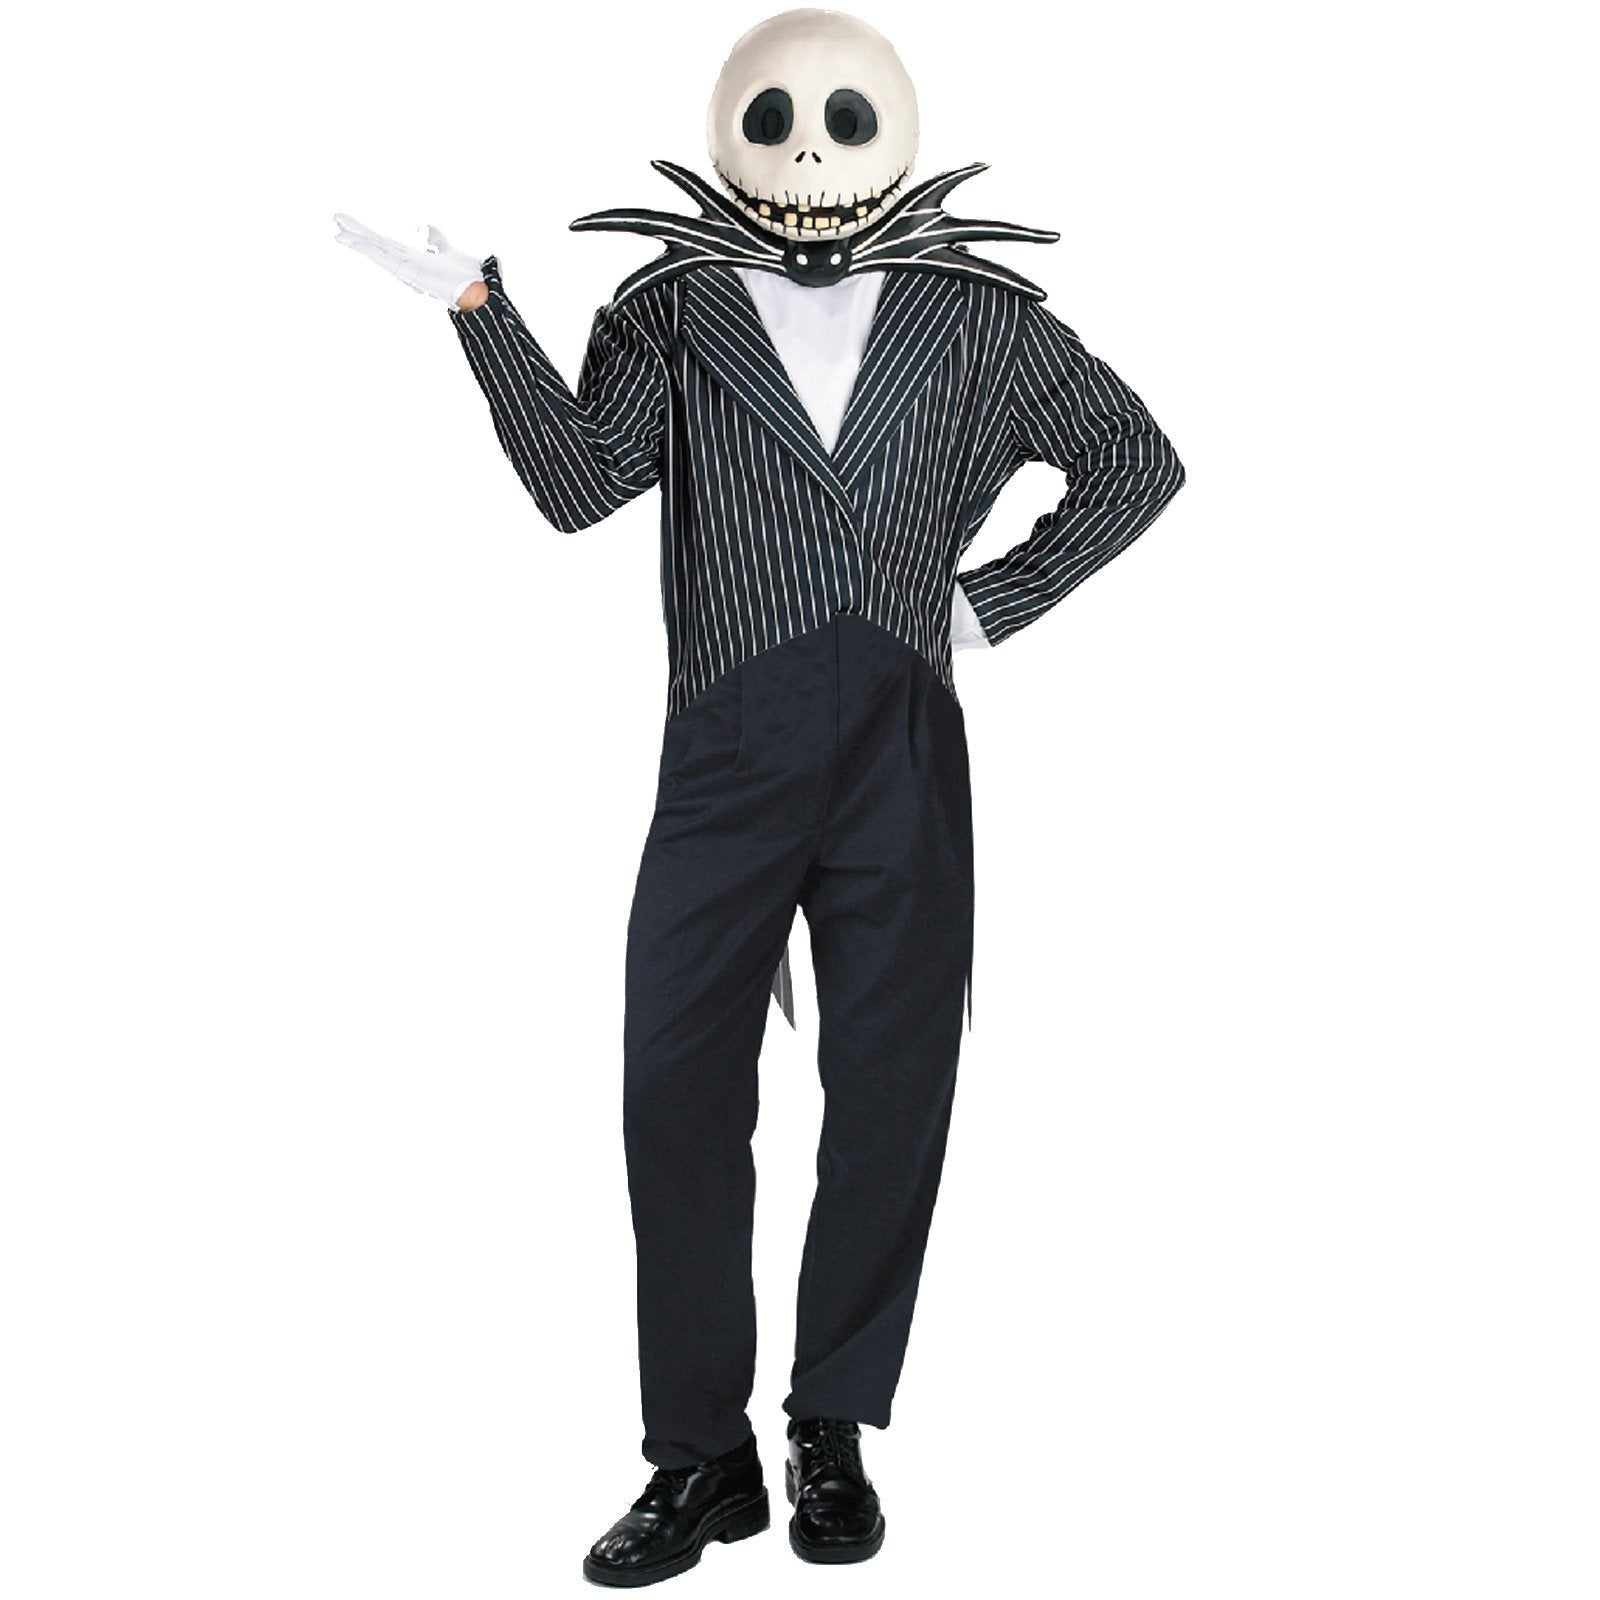 Jack Skellington, A nightmare before Christmas Costume - Hire - The Costume Company | Fancy Dress Costumes Hire and Purchase Brisbane and Australia